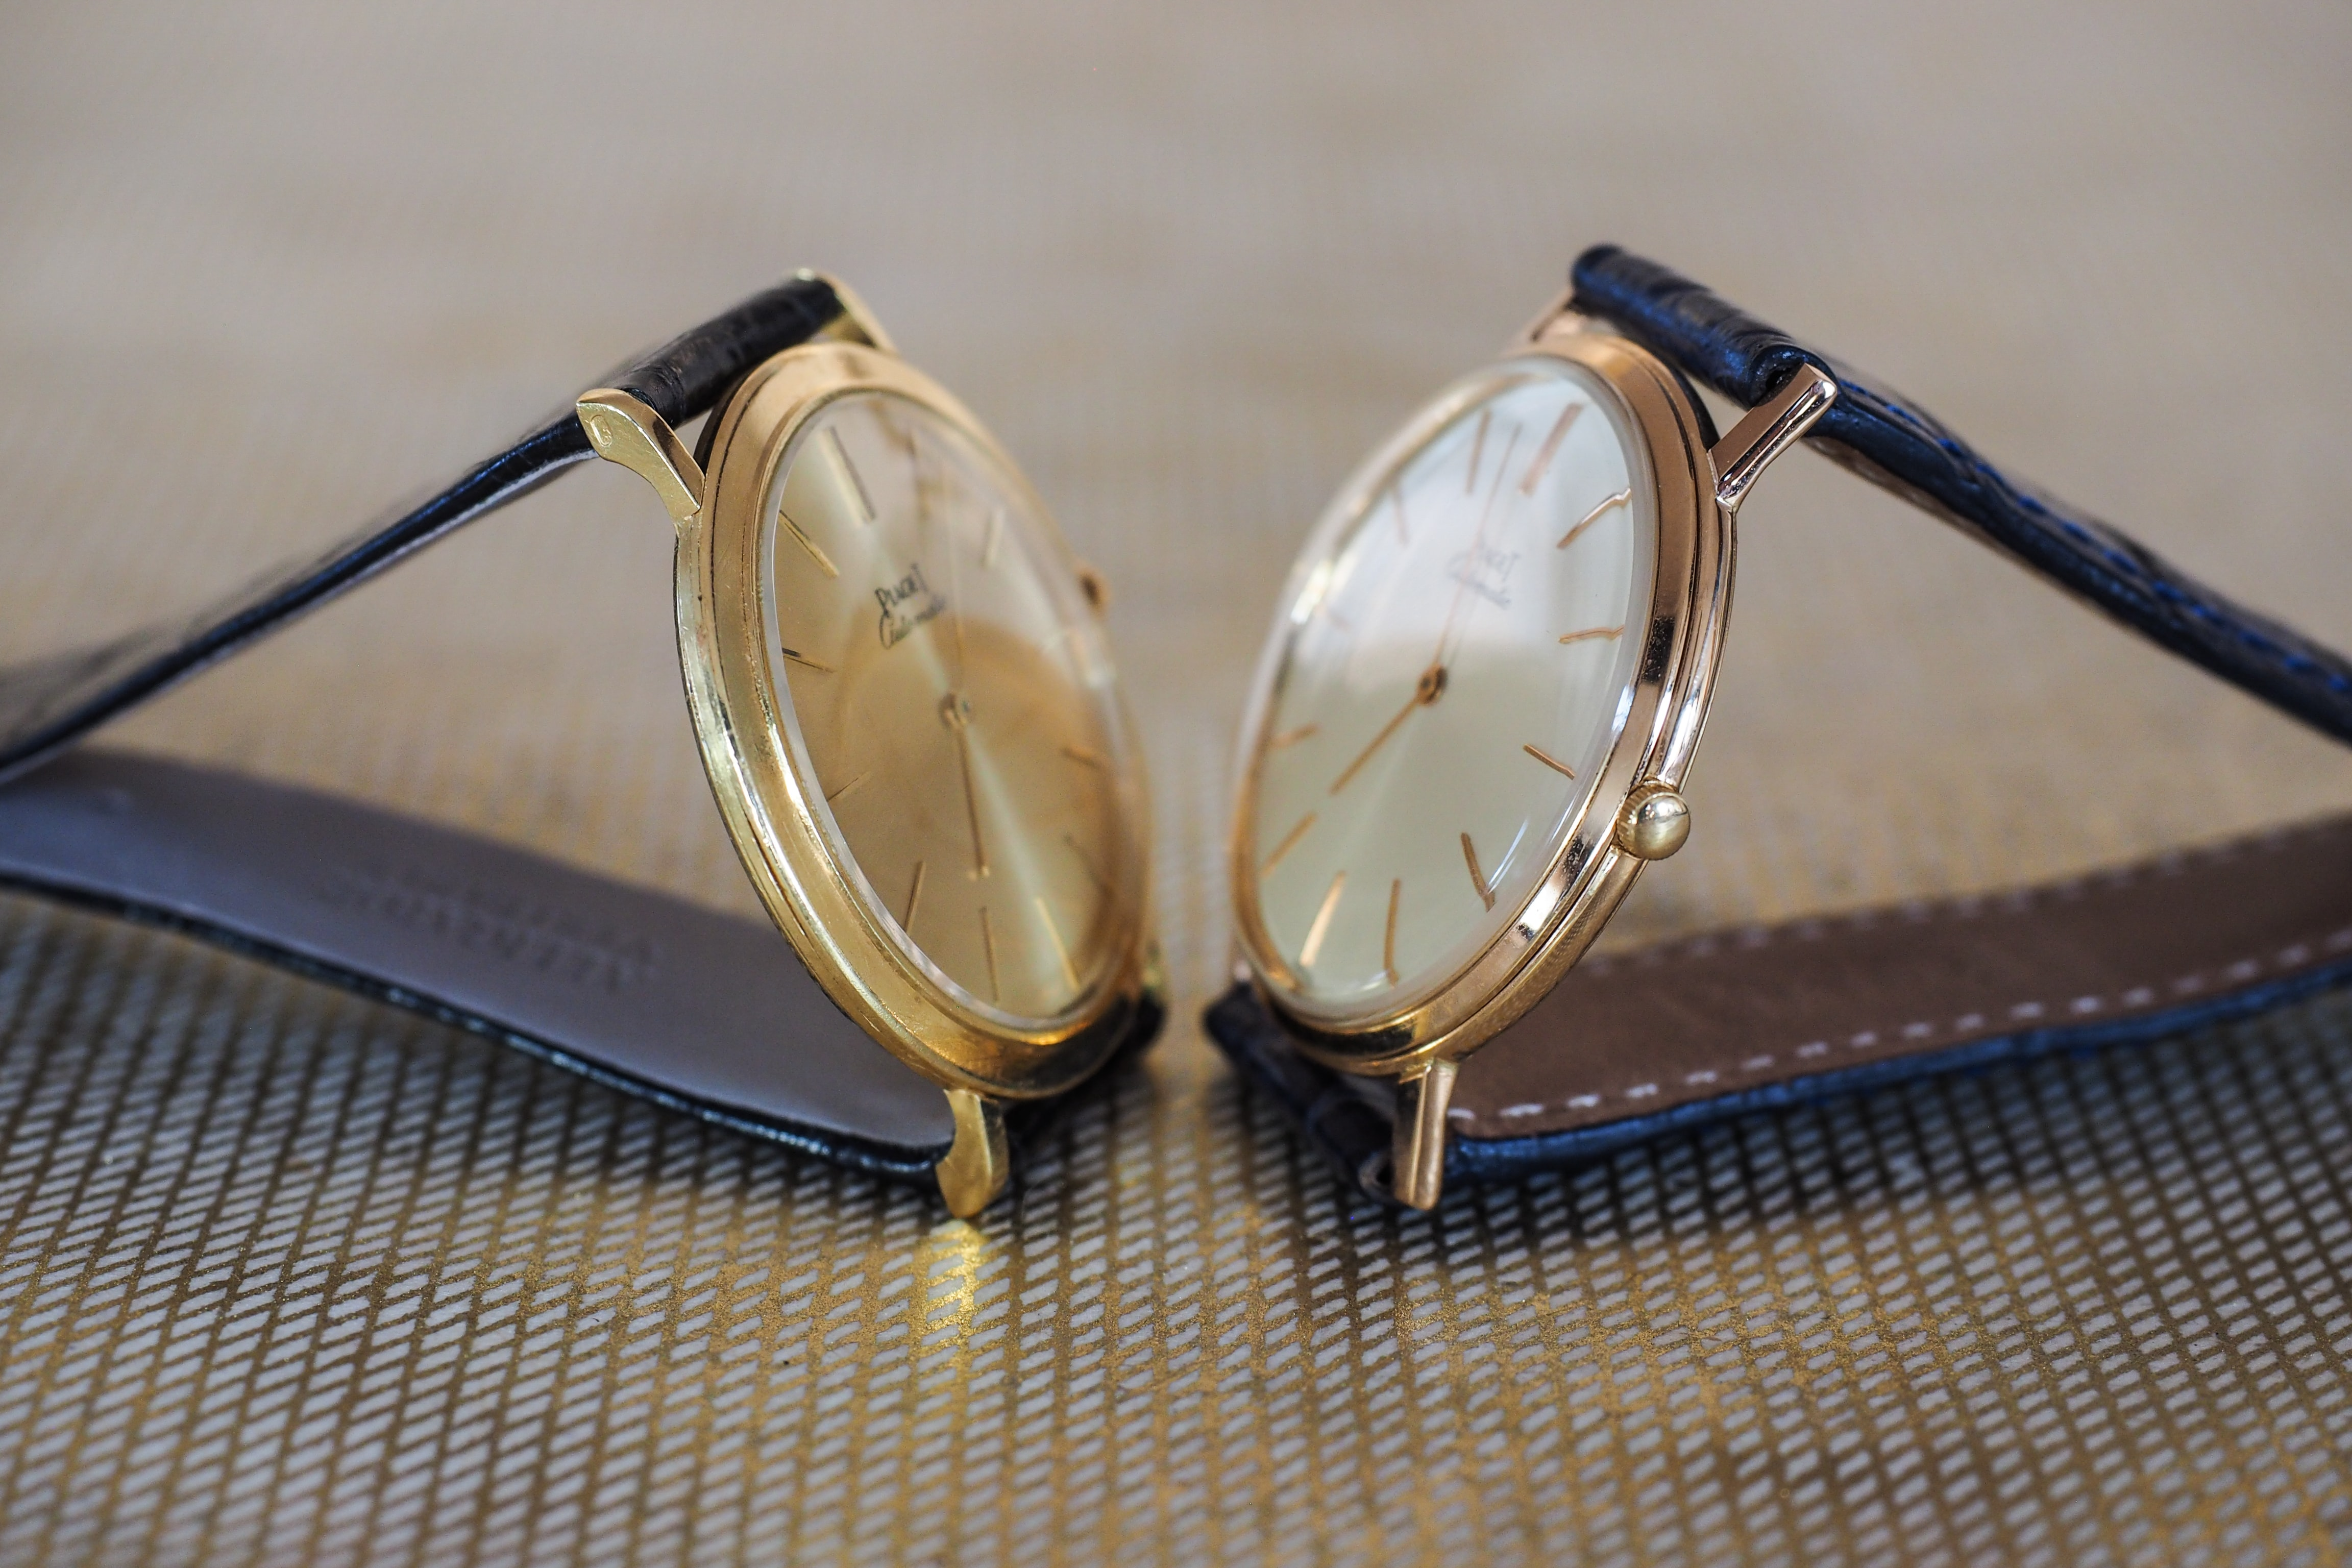 Introducing: The Piaget Altiplano 60th Anniversary Collection, With Automatic And Hand-Wound Editions Introducing: The Piaget Altiplano 60th Anniversary Collection, With Automatic And Hand-Wound Editions PC090842